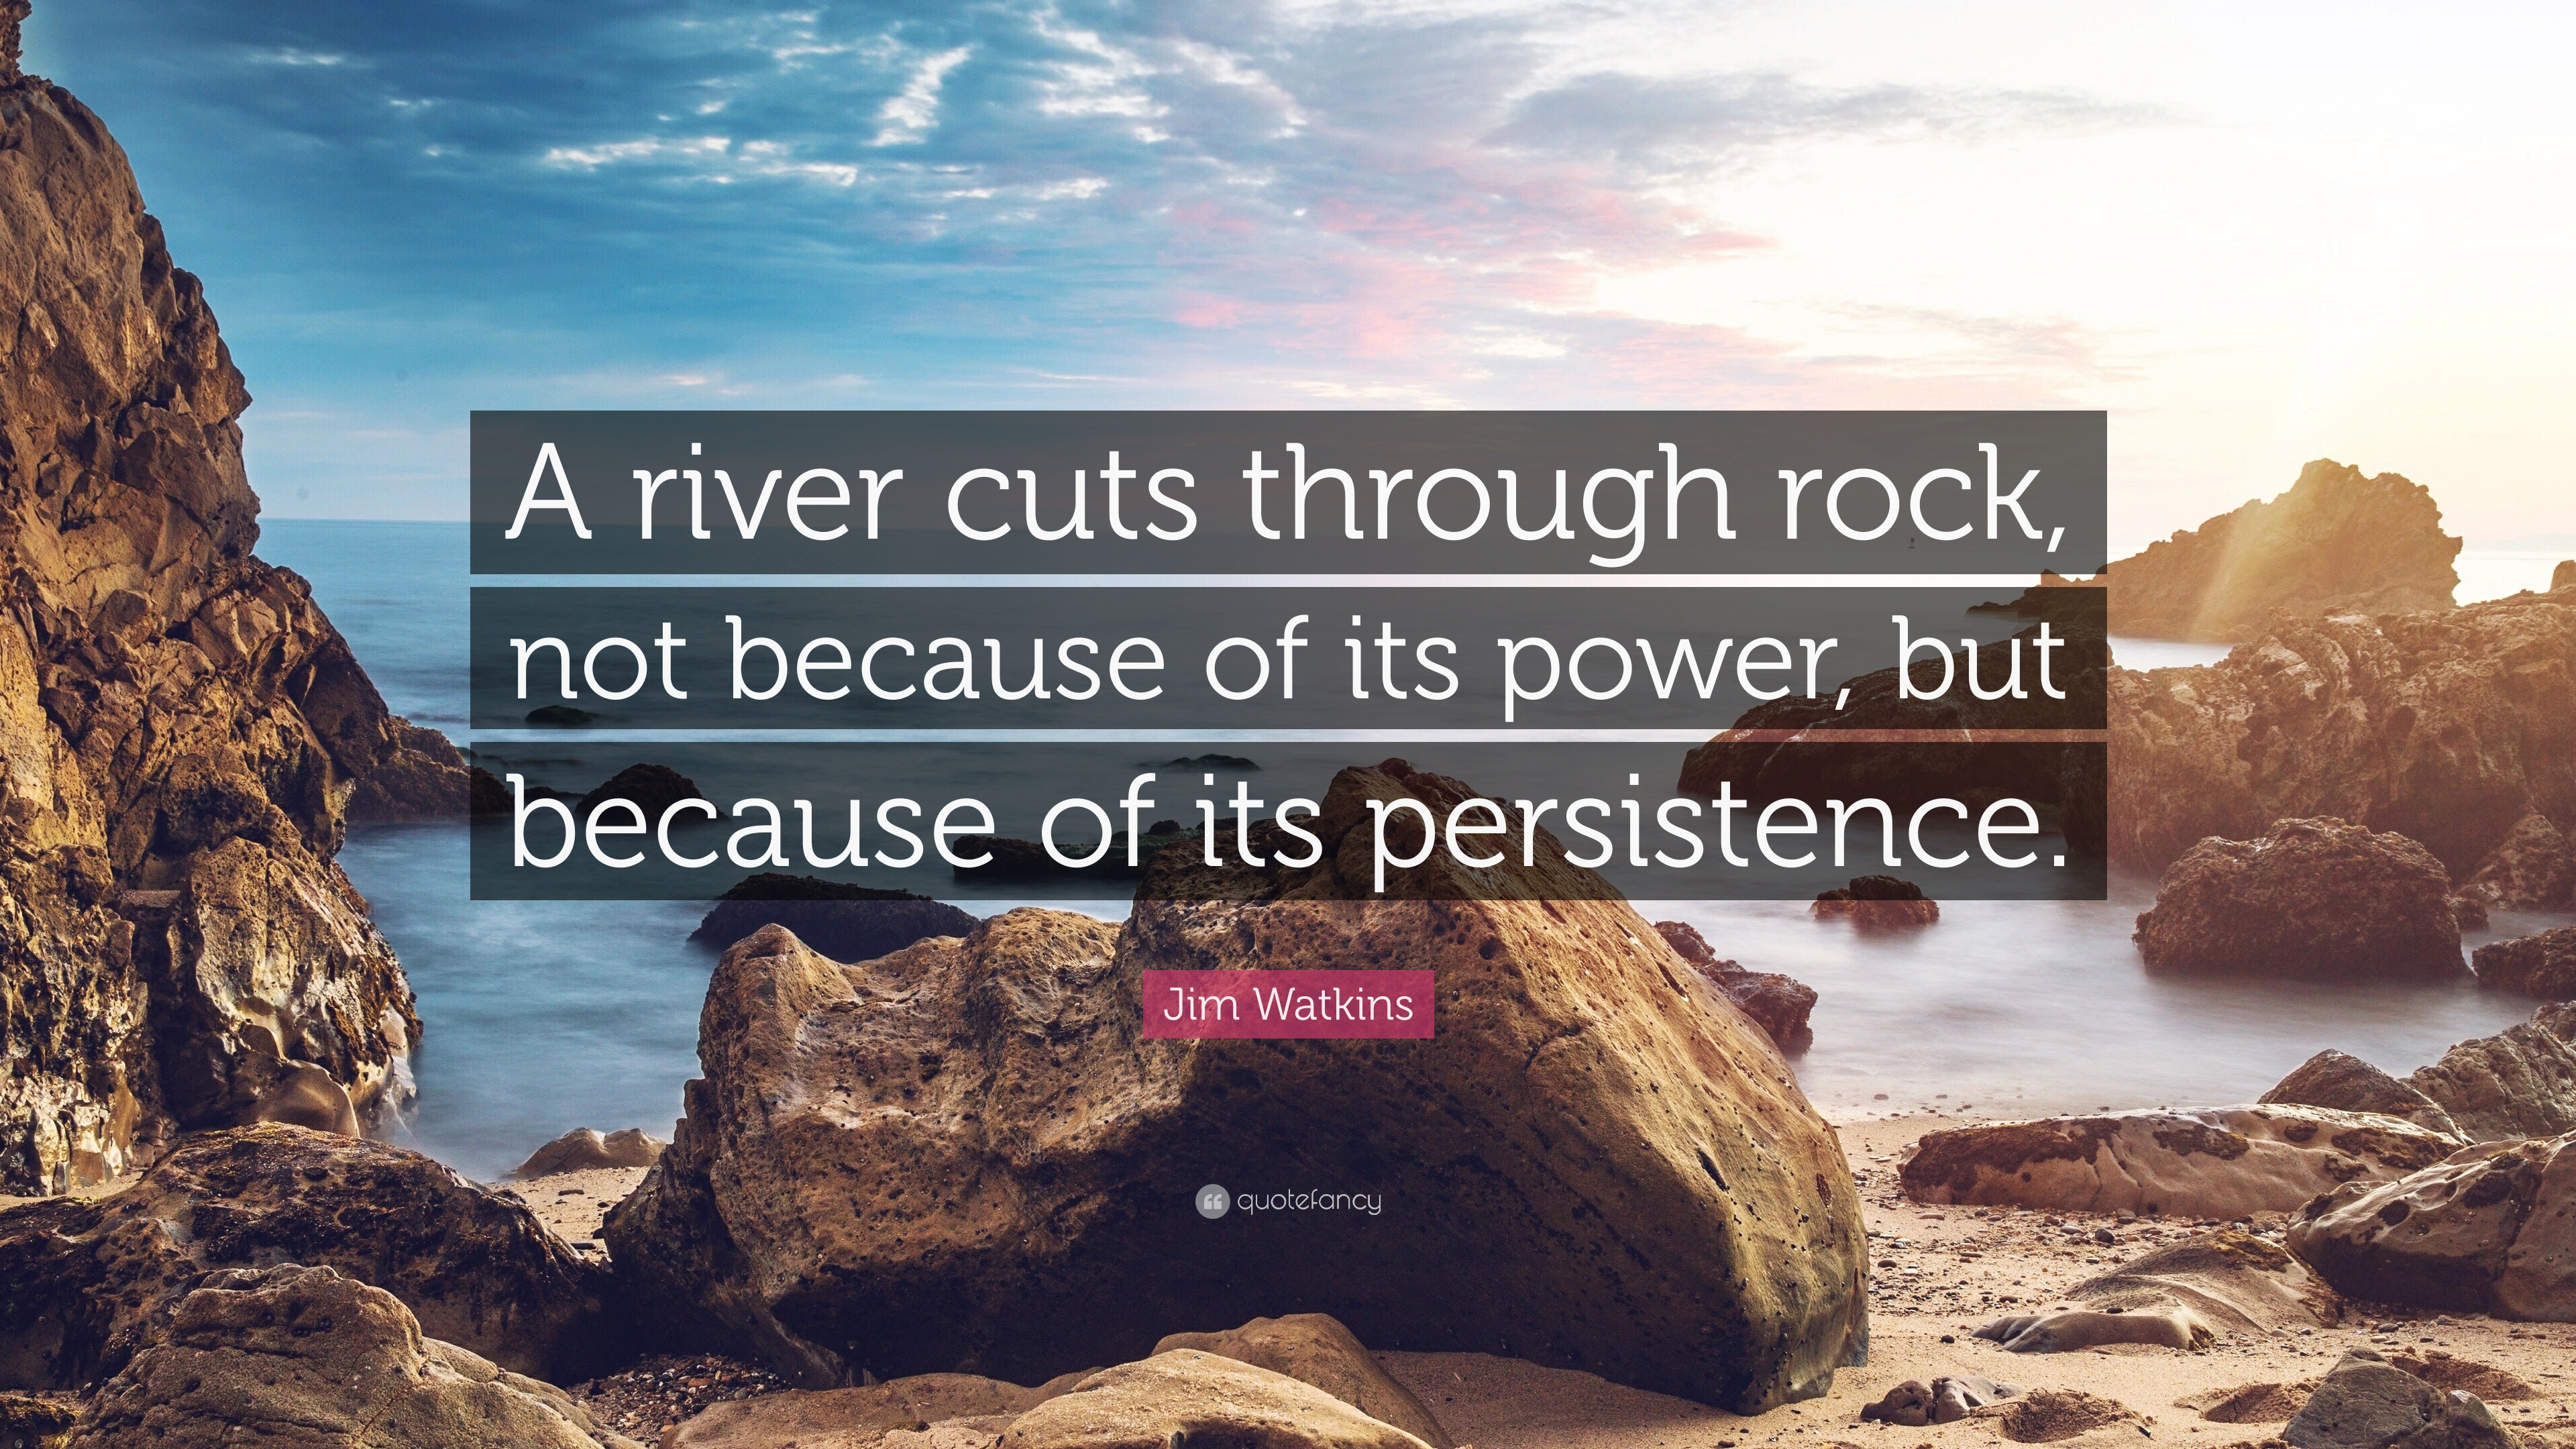 A river cuts through rock, not because of its power but because of its persistence. -Jim Watkins [3840×2160]